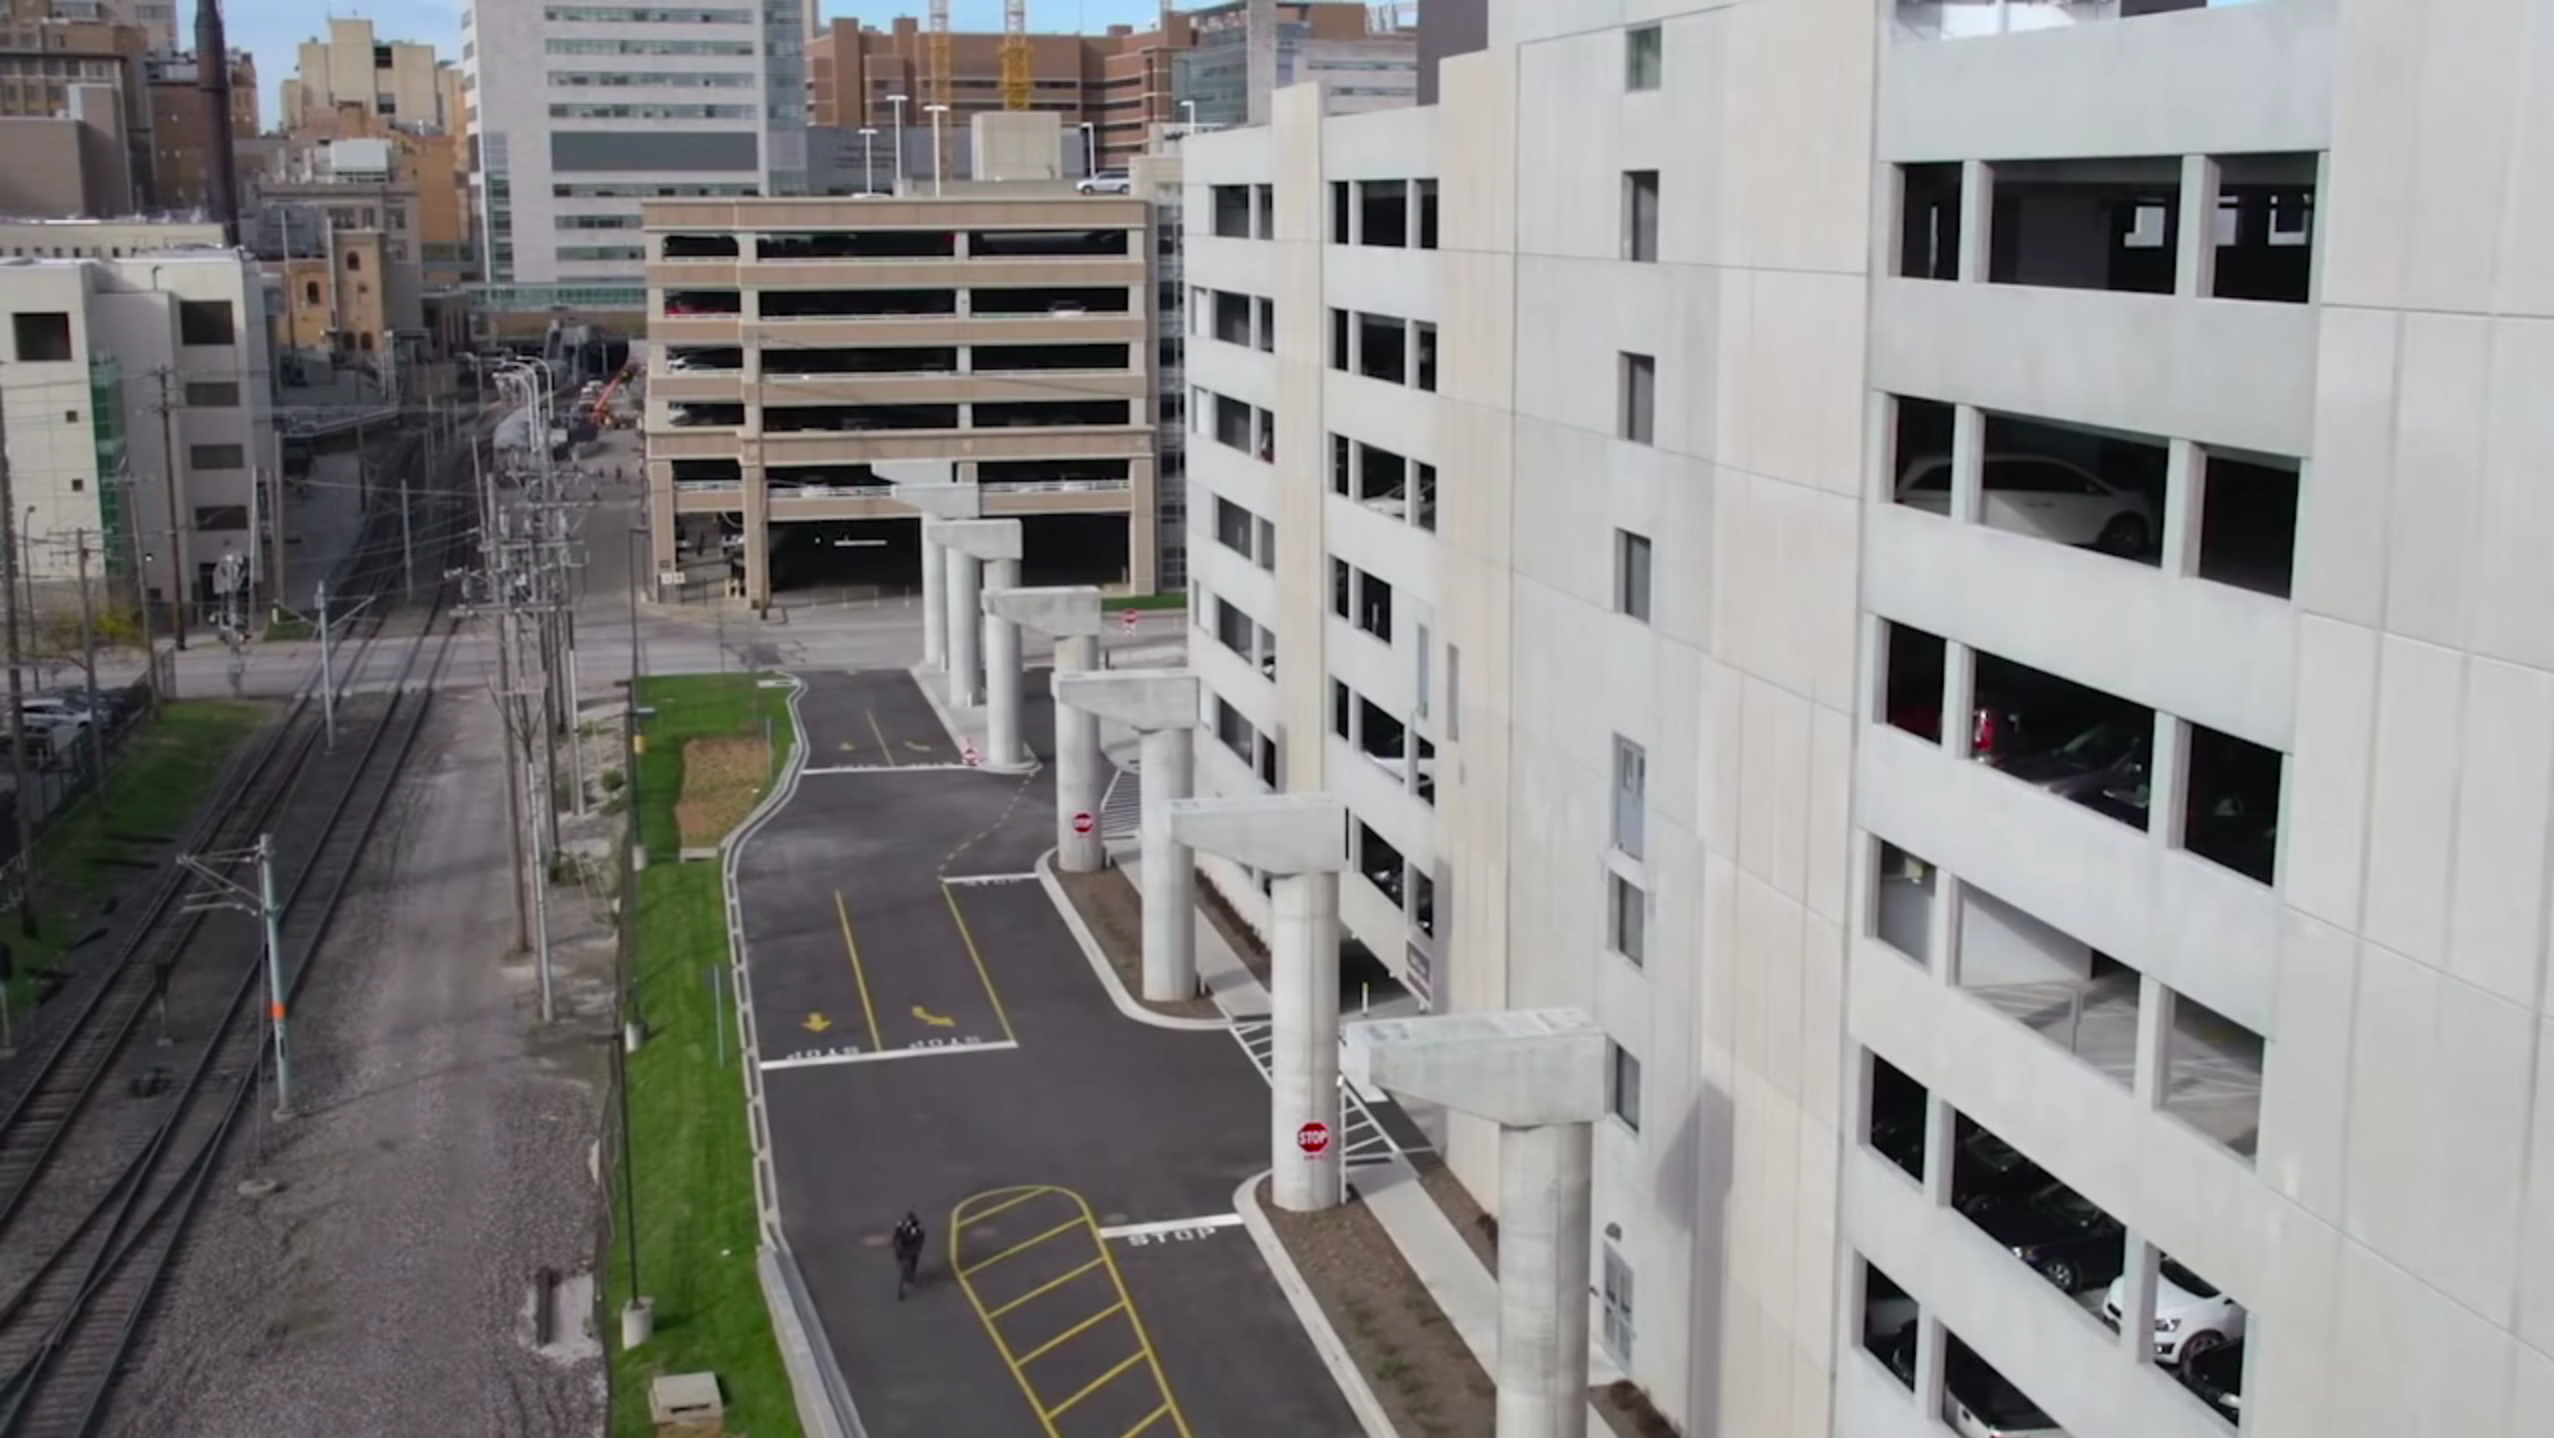 [VIDEO] Updated: BJC Campus Renewal Project – The New Link Extension